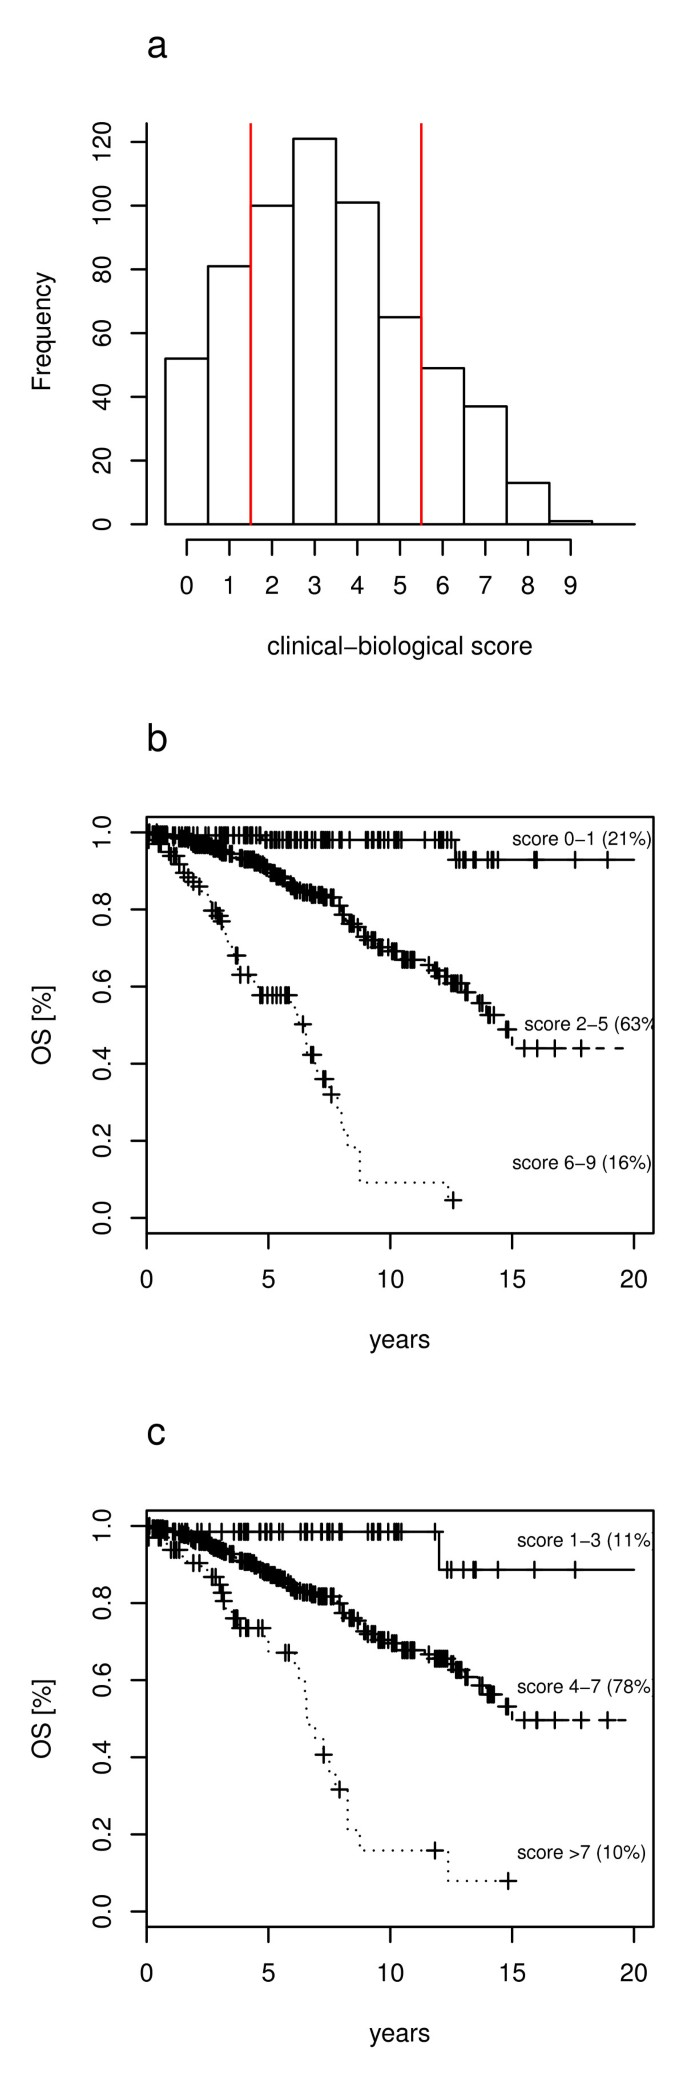 IGHV gene mutational status and 17p deletion are independent